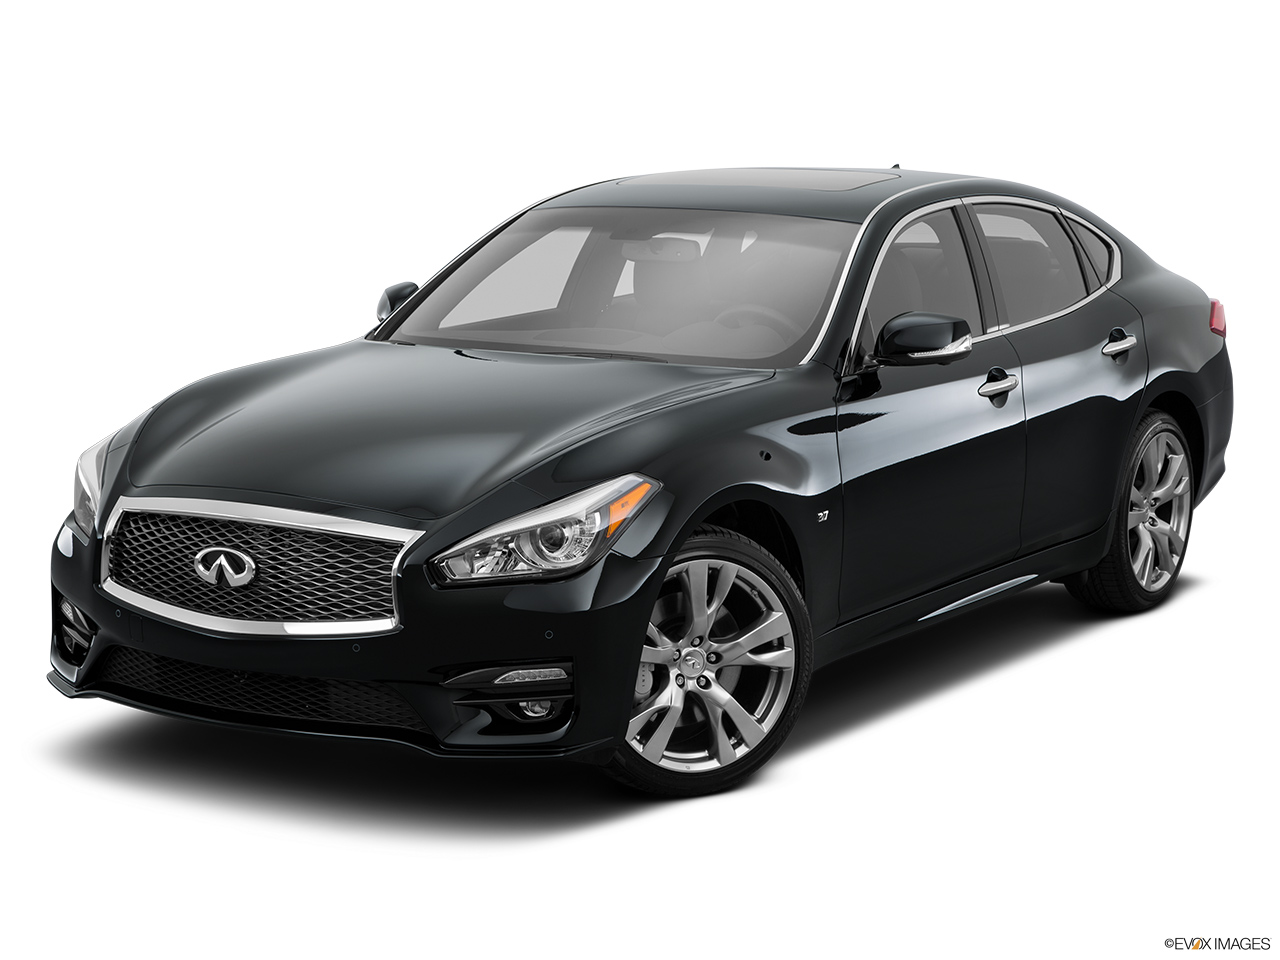 2015 infiniti q70 sedan v6 awd. Black Bedroom Furniture Sets. Home Design Ideas